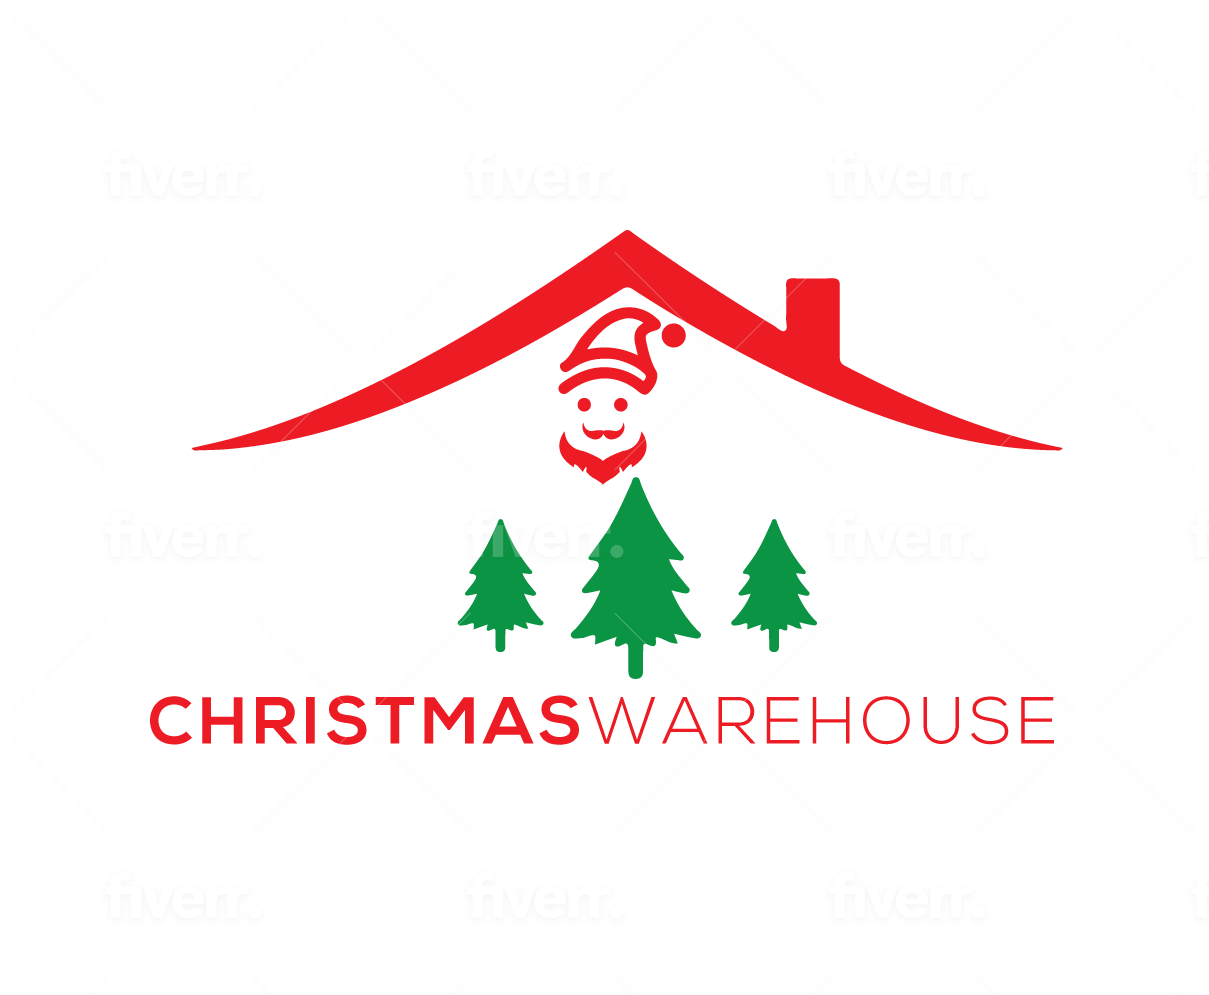 Christmas Warehouse